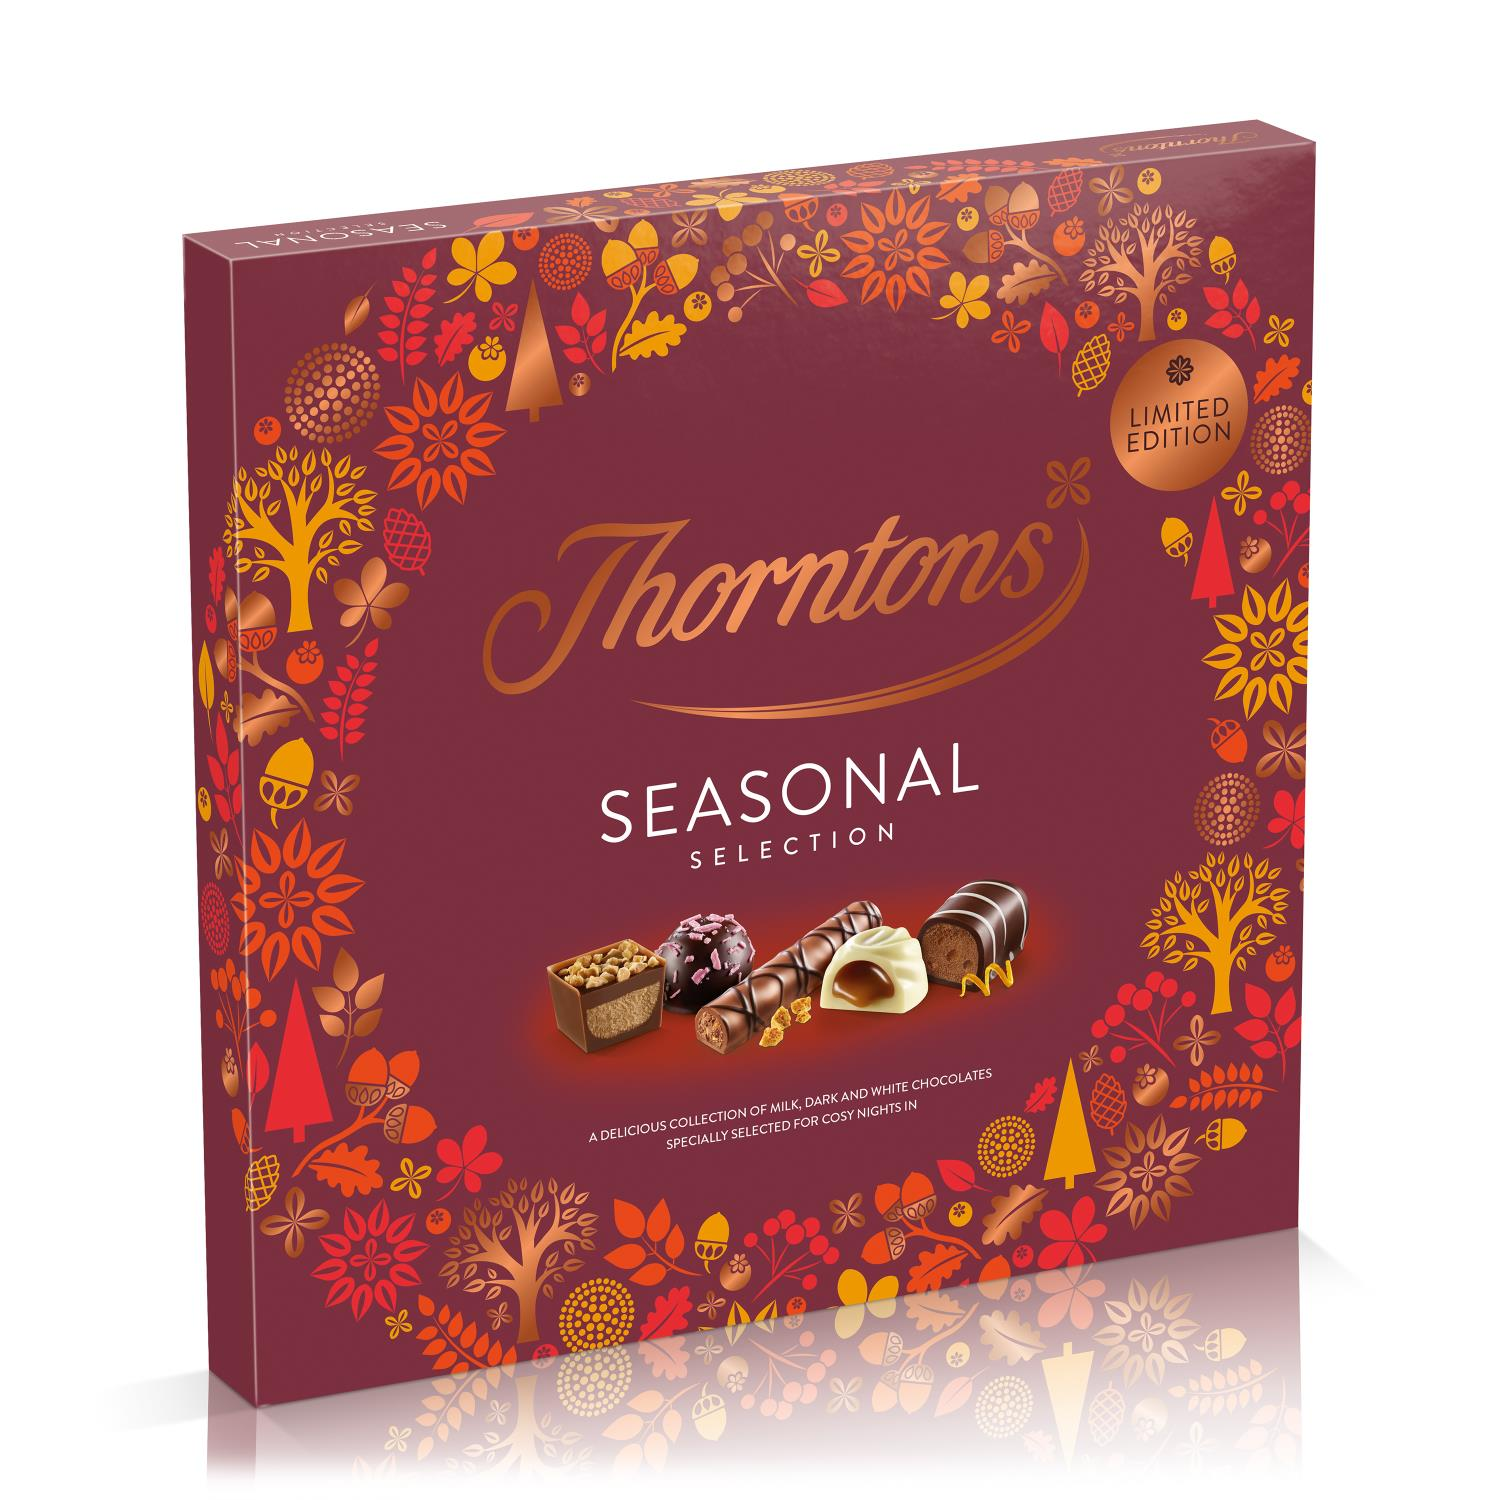 Thorntons Seasonal collection